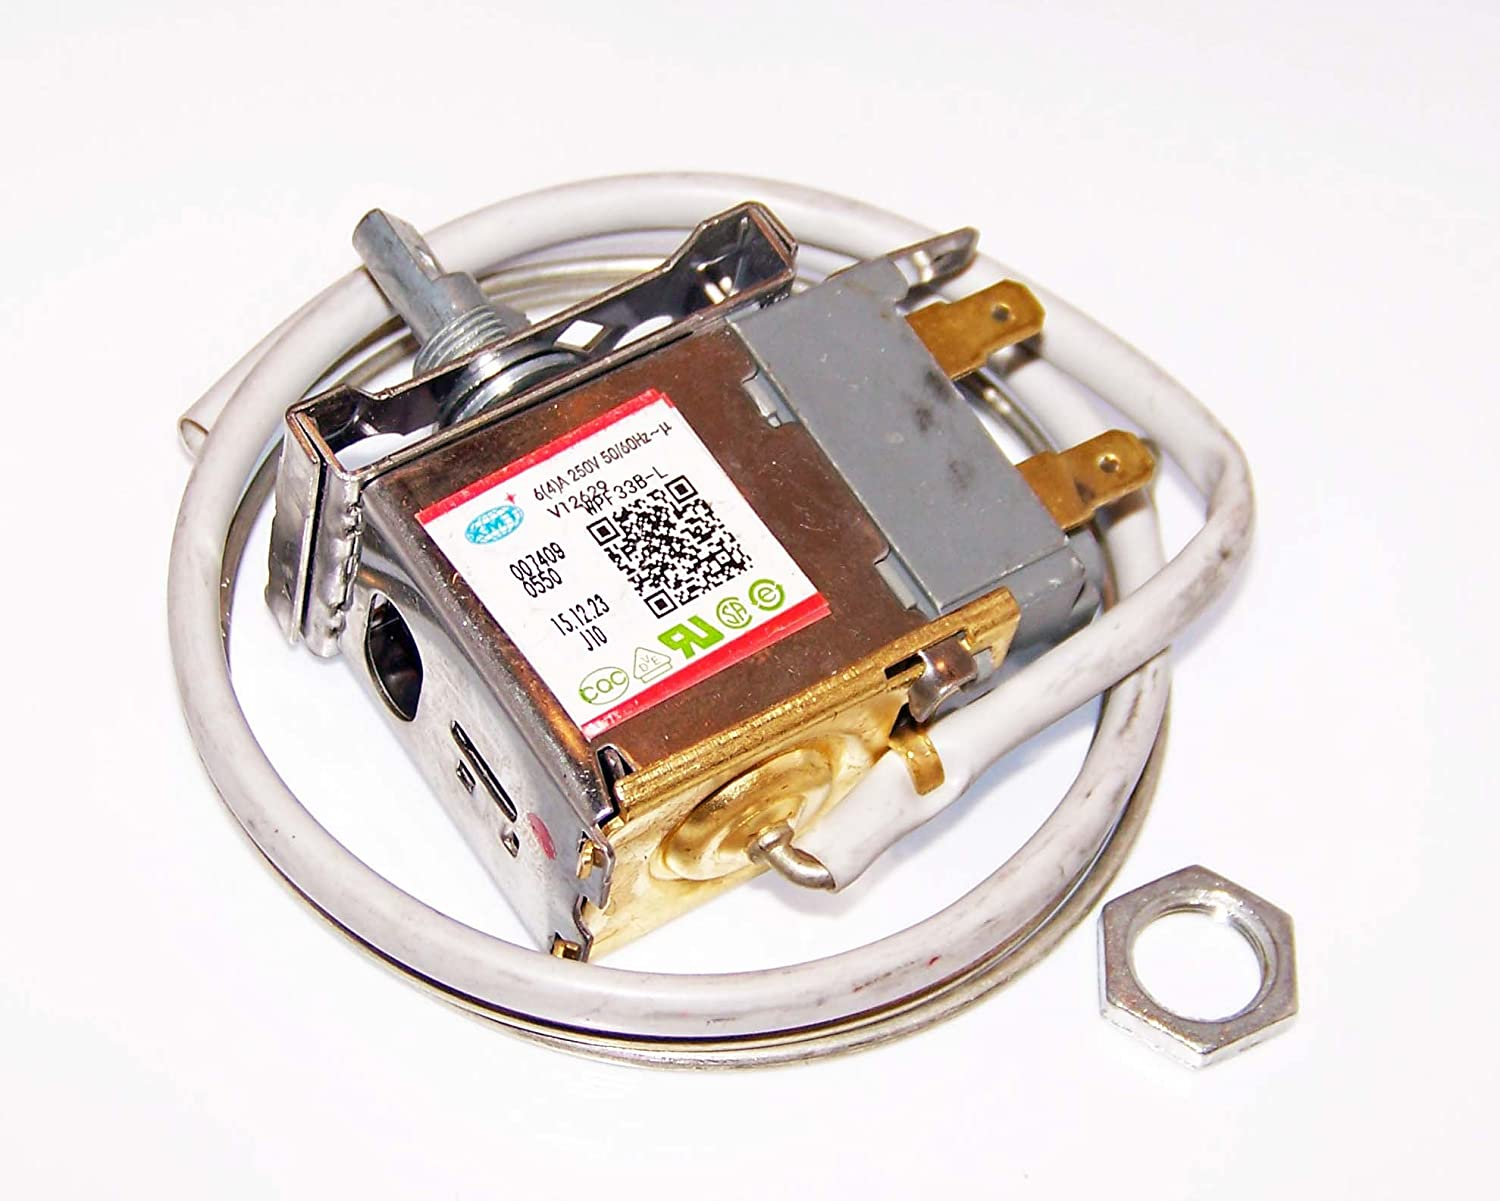 OEM Haier Freezer Thermostat Specifically For Haier BD101G, BD101GLD, BD120G, BD120GLD, BD198G